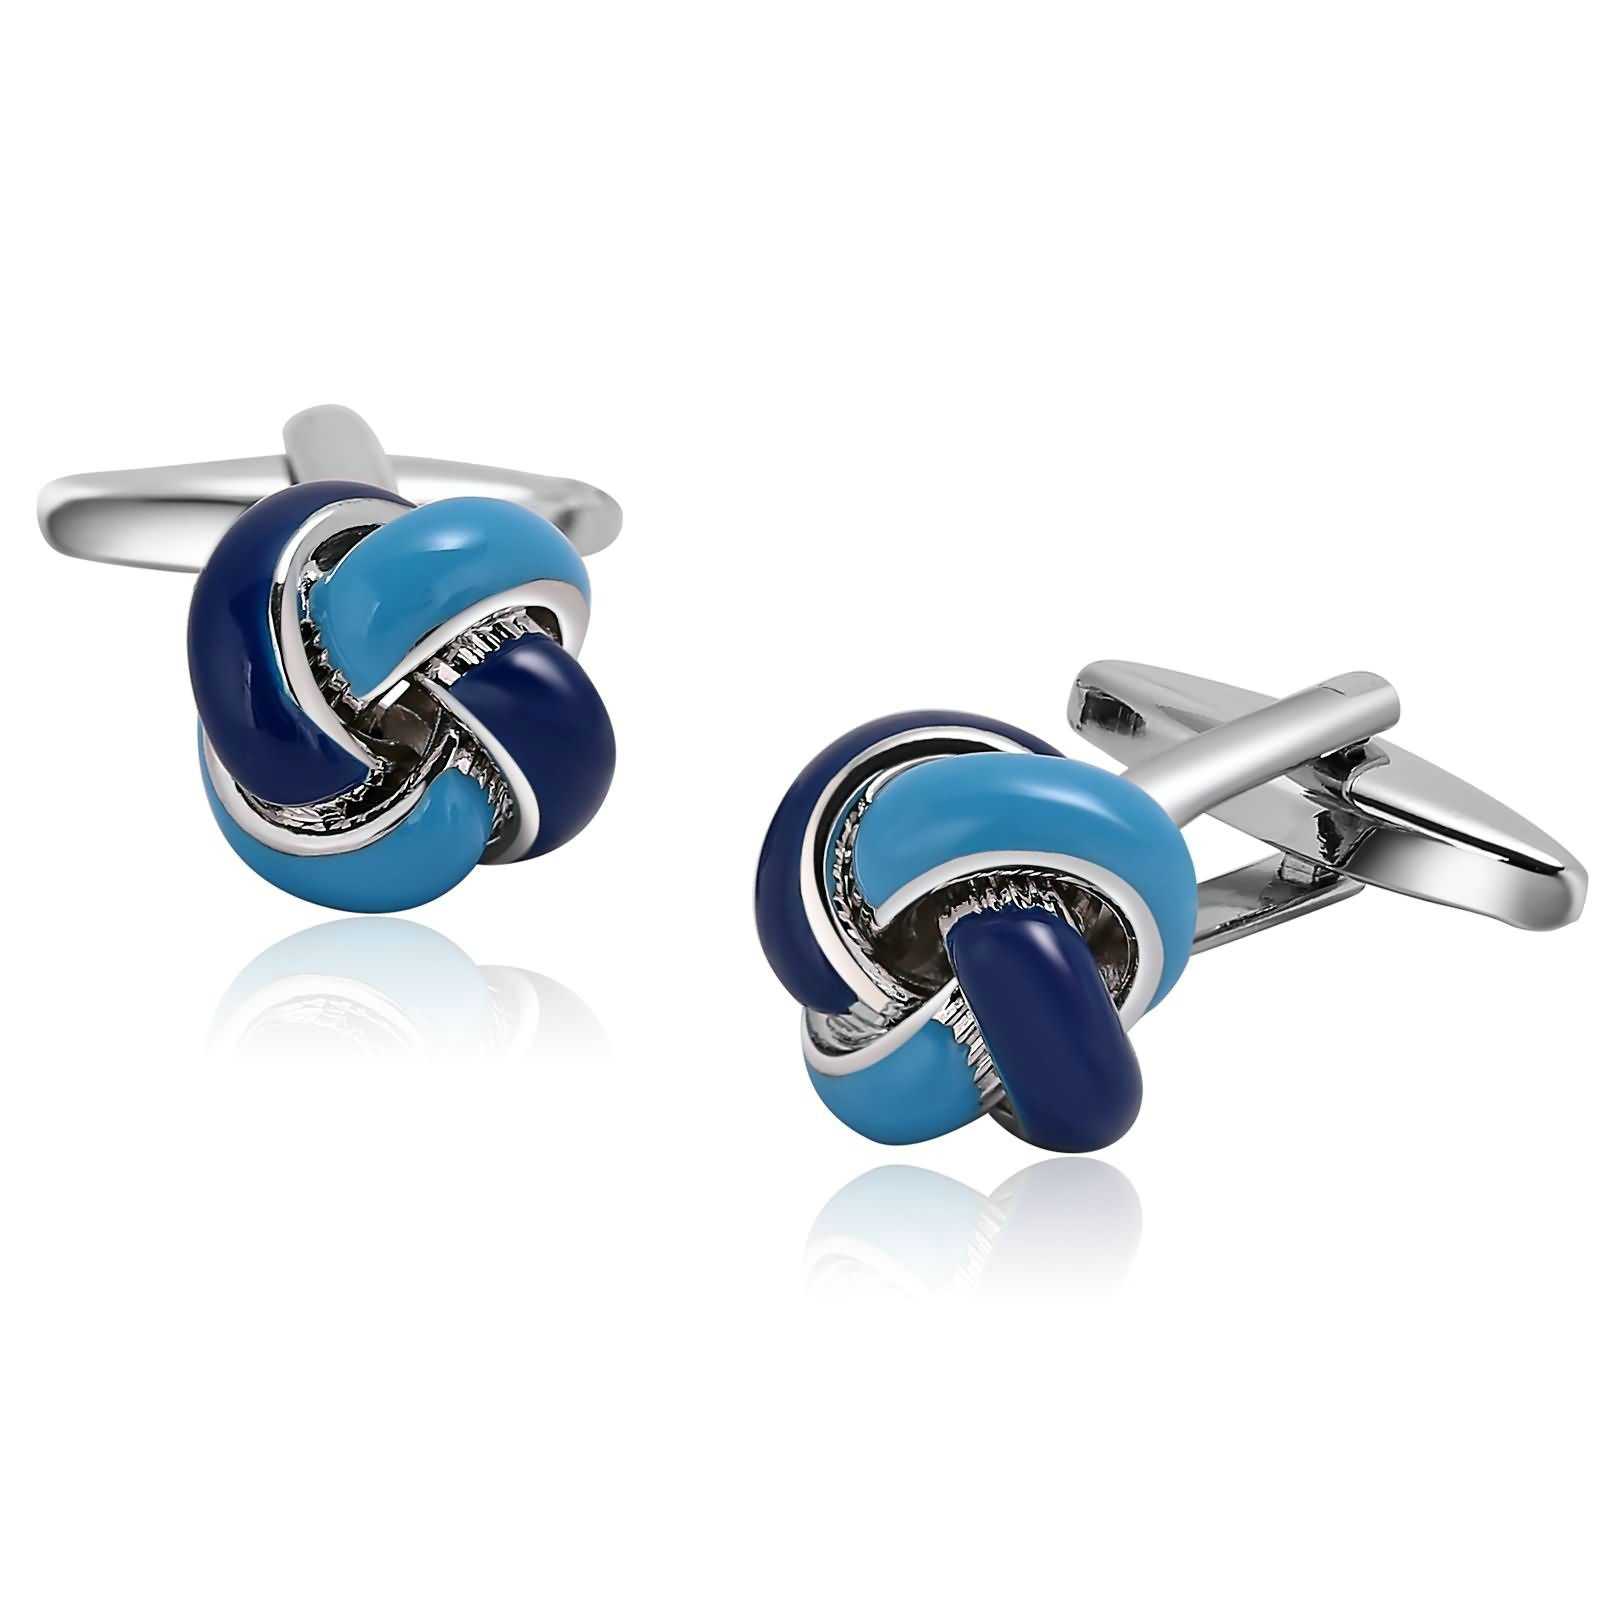 Aokarry Cufflinks-Men's Stainless Steel Love Knot Cuff Links Blue by Aokarry (Image #1)